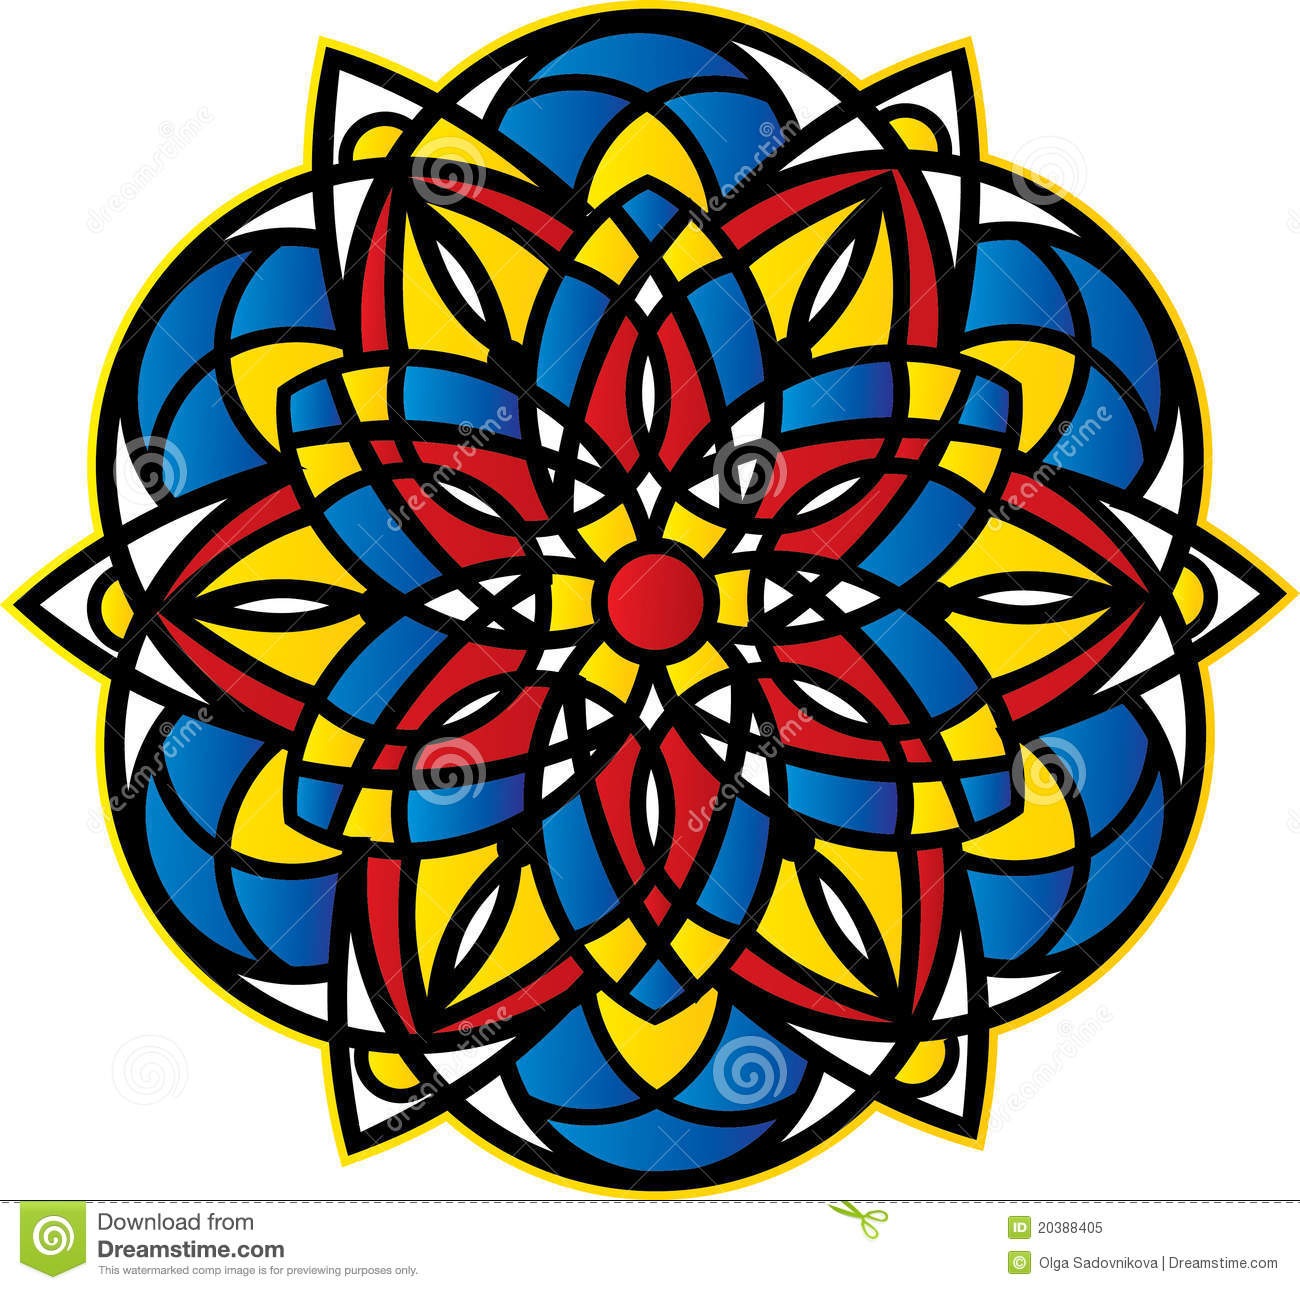 Symmetrical Pattern Royalty Free Stock Photo - Image: 20388405